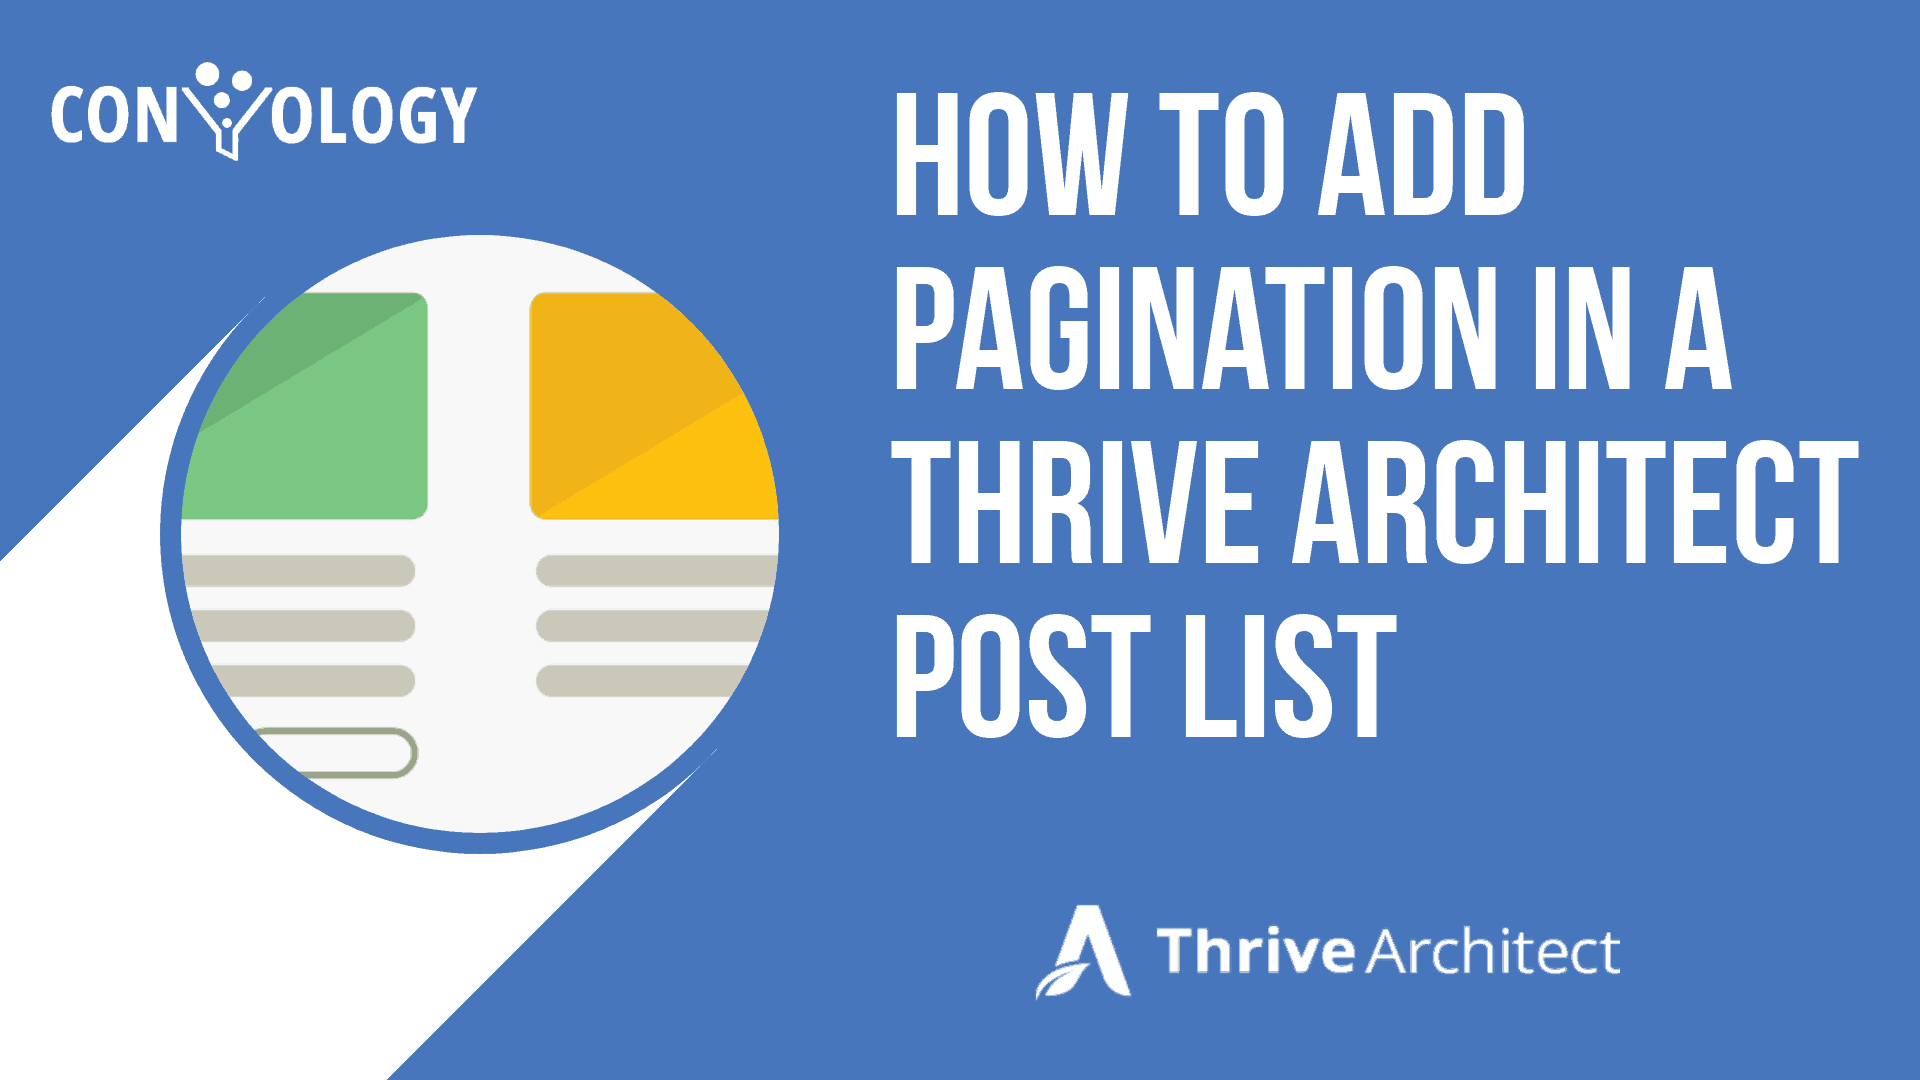 How to add pagination to Thrive Architect Blog posts